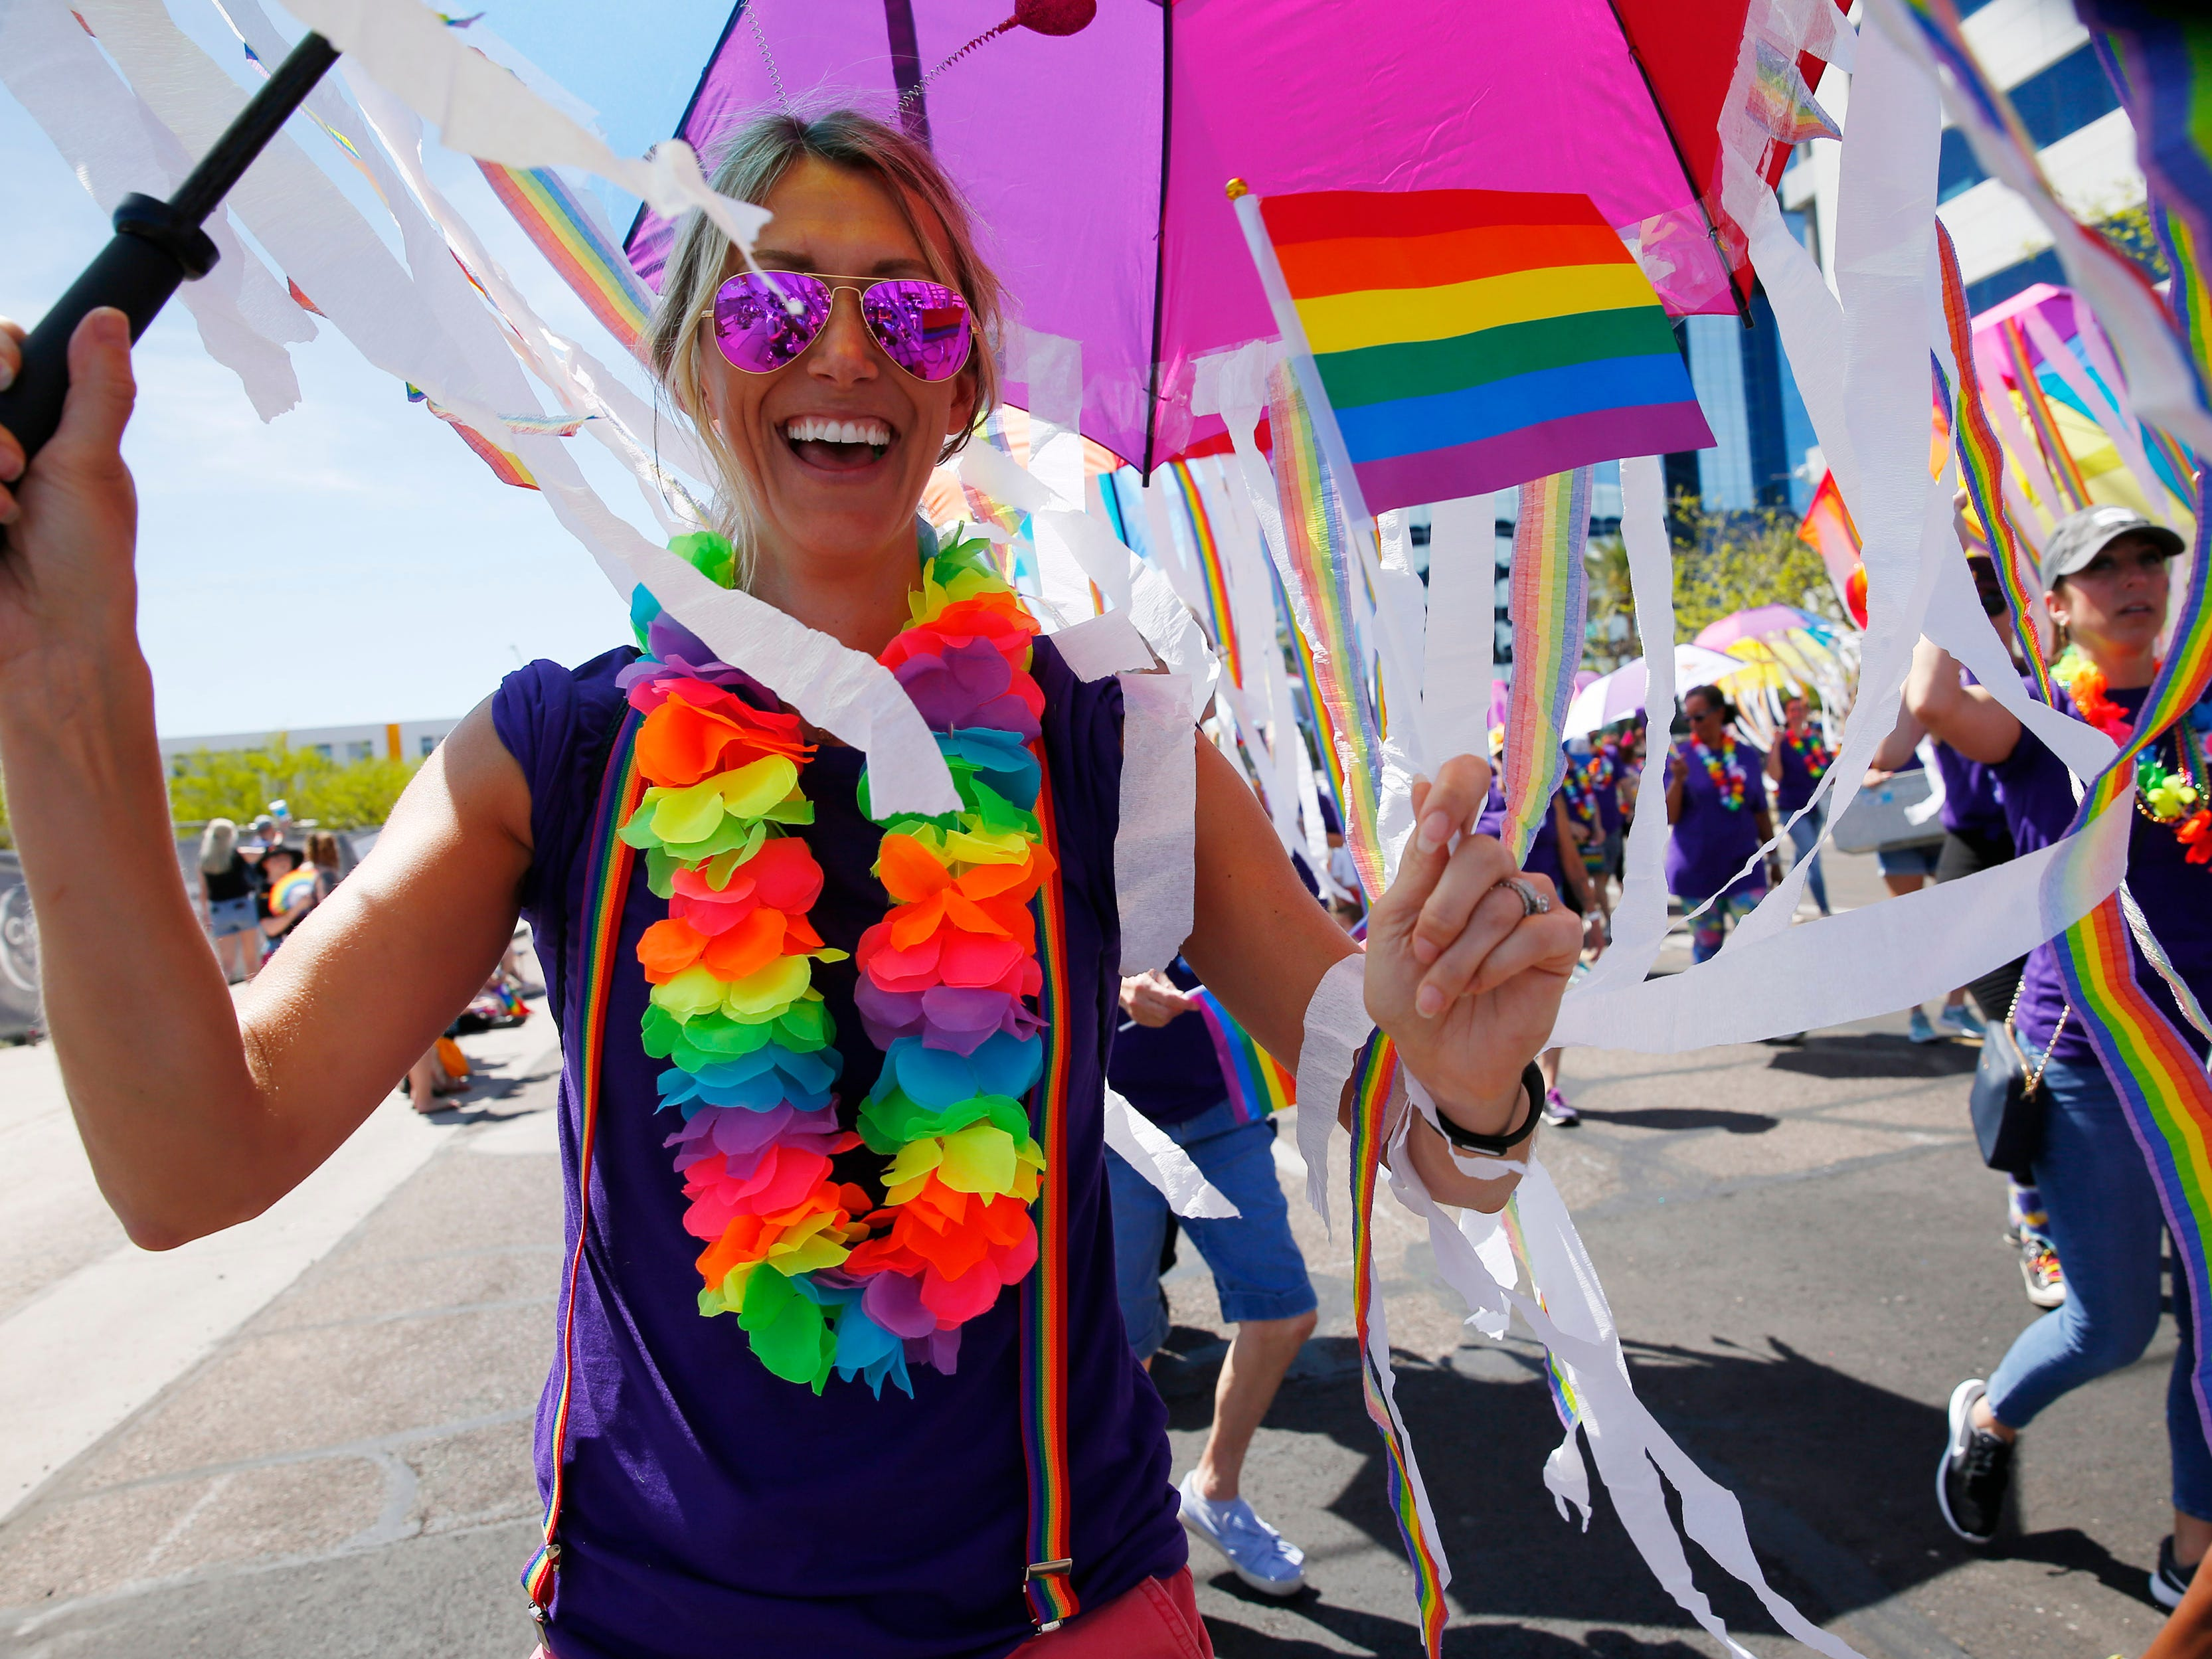 Abbey Miller marches with Edward Jones during the Phoenix Pride Parade on April 7, 2019.